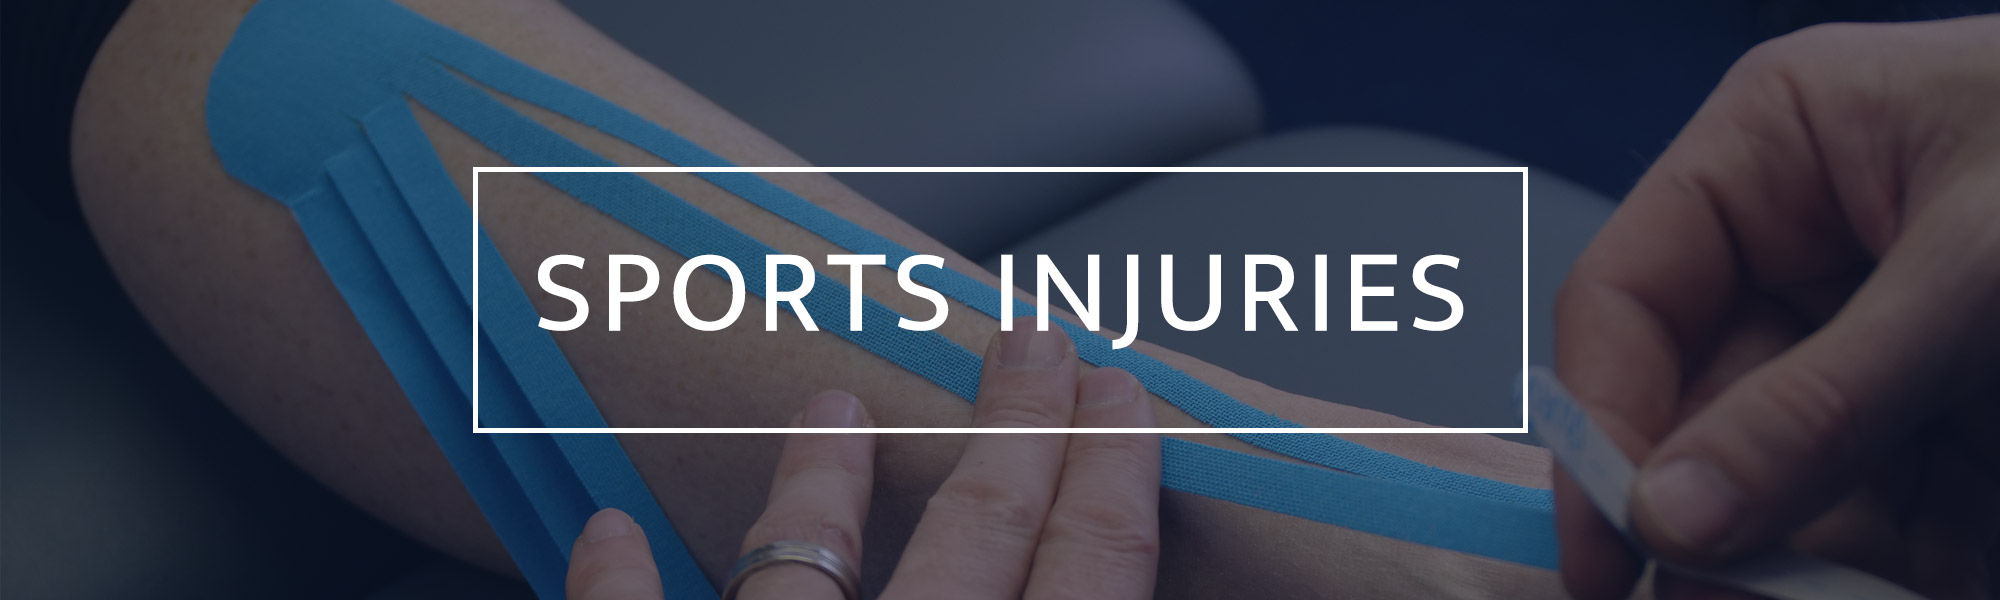 Sports Injuries Header 2